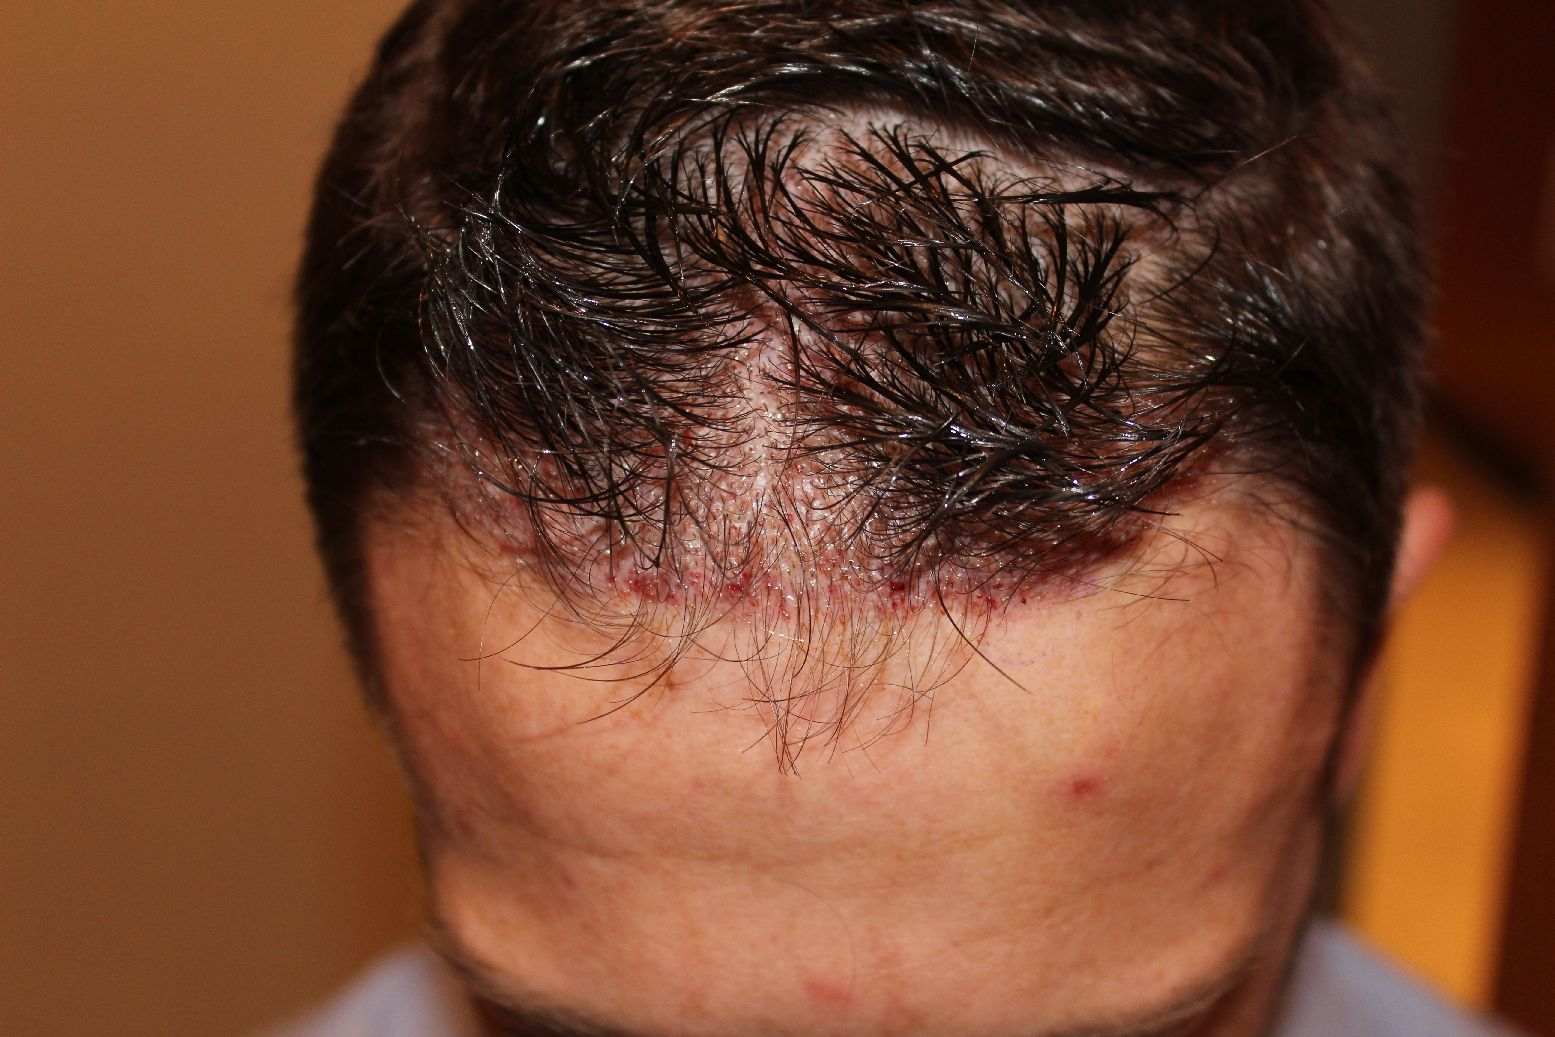 FUE hair transplant without shaving head: Unshaved recipient area directly after the surgery